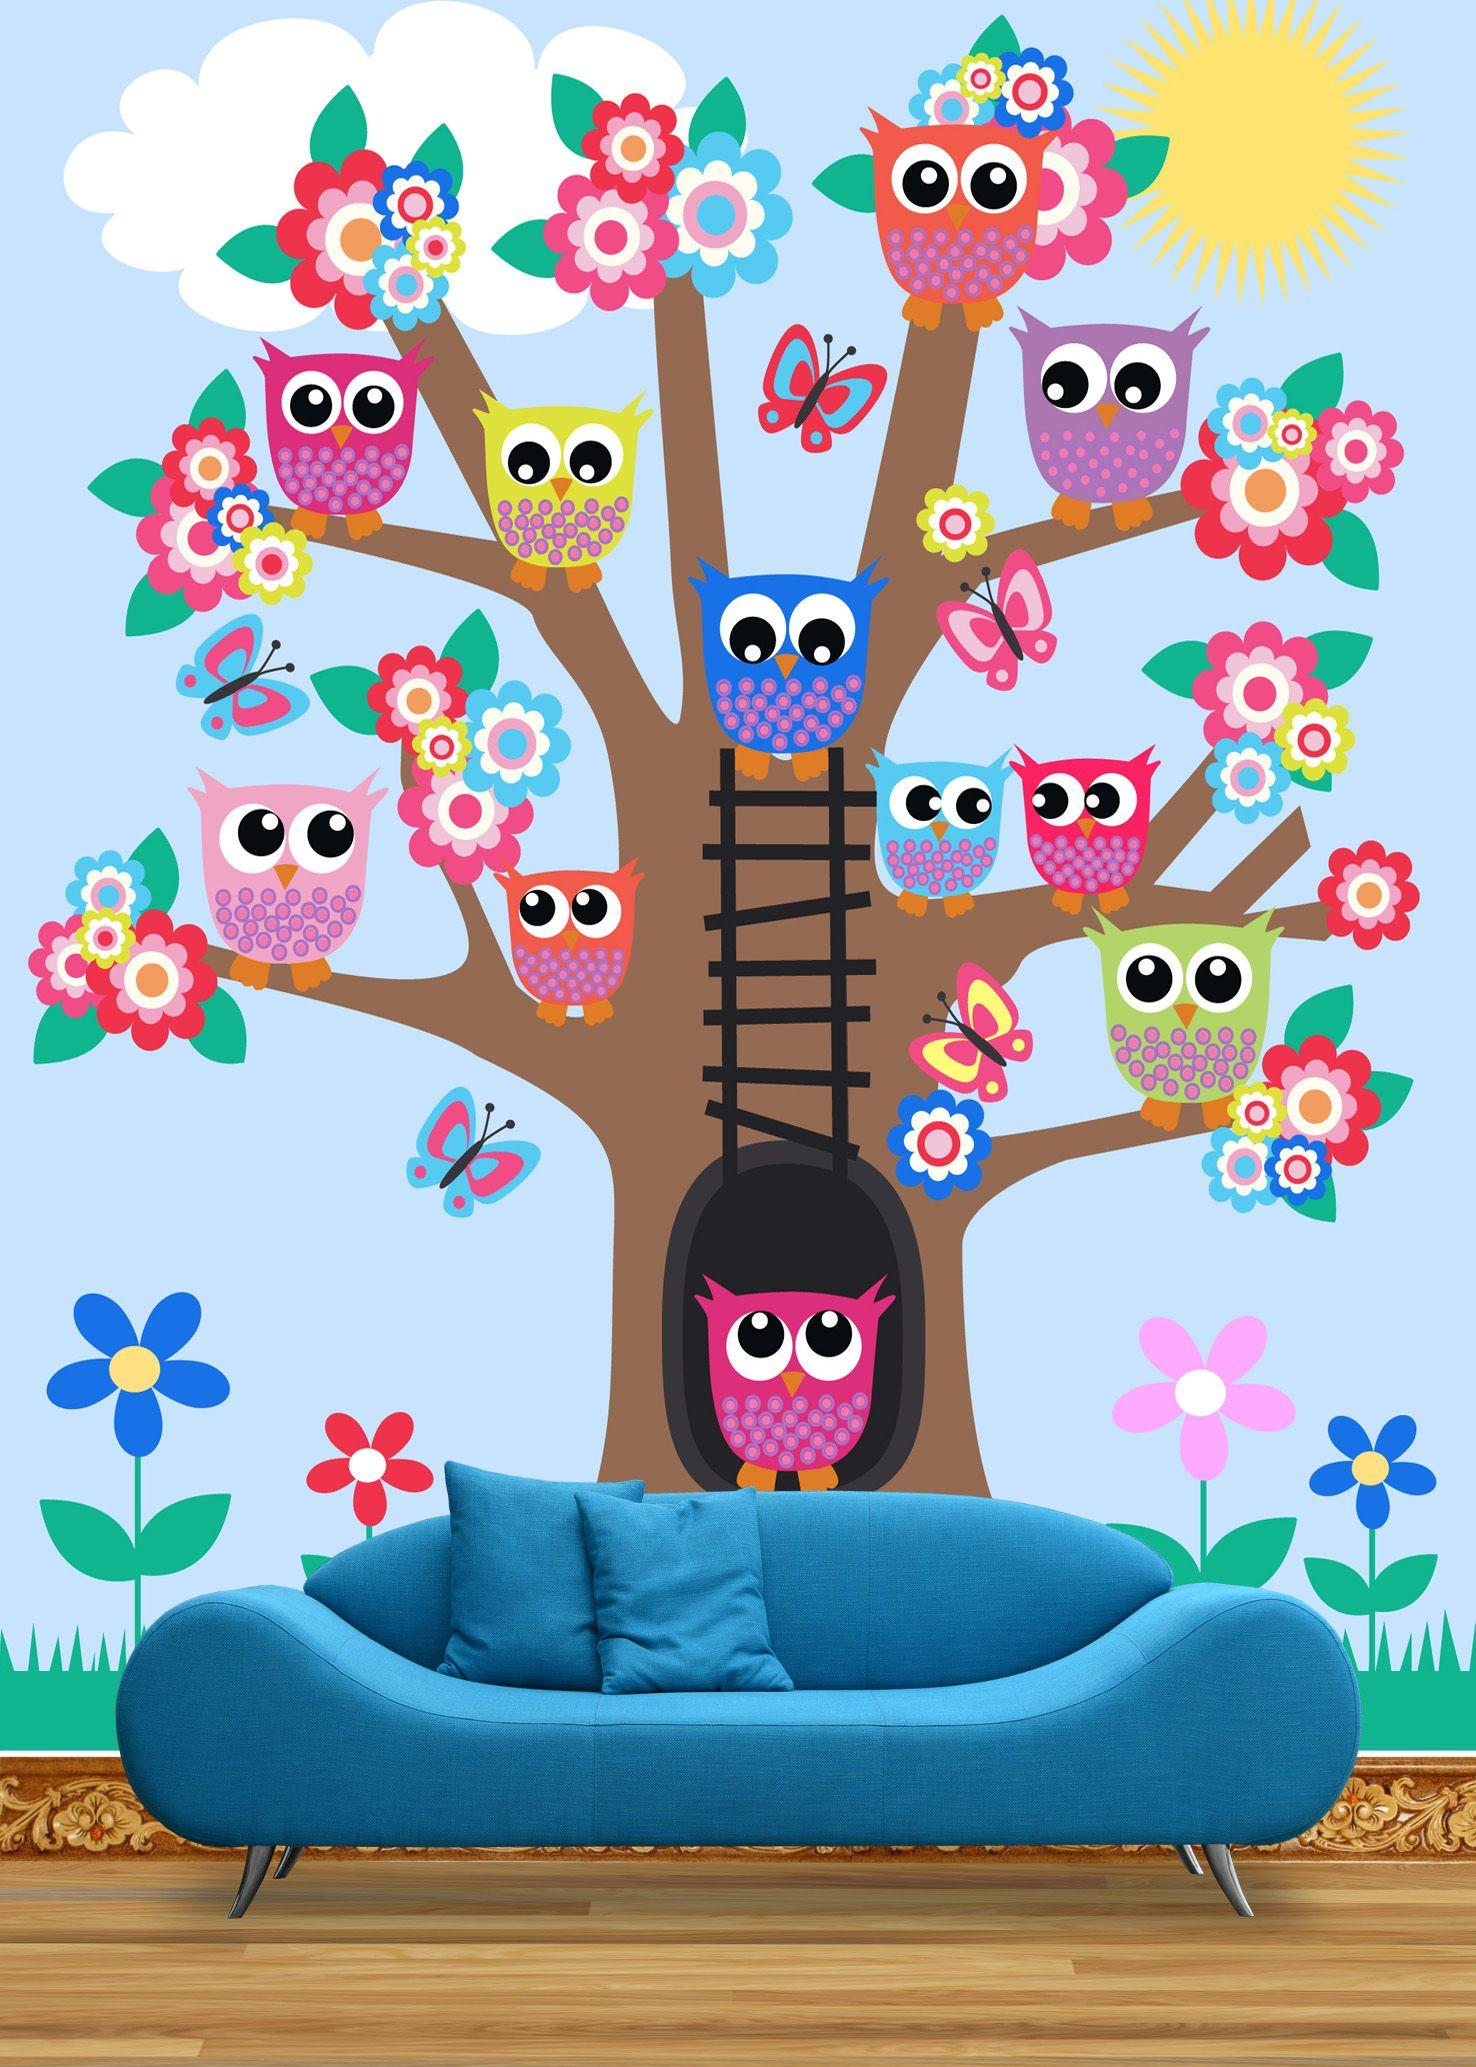 Download 900+ Wallpaper Animasi Owl HD Paling Baru